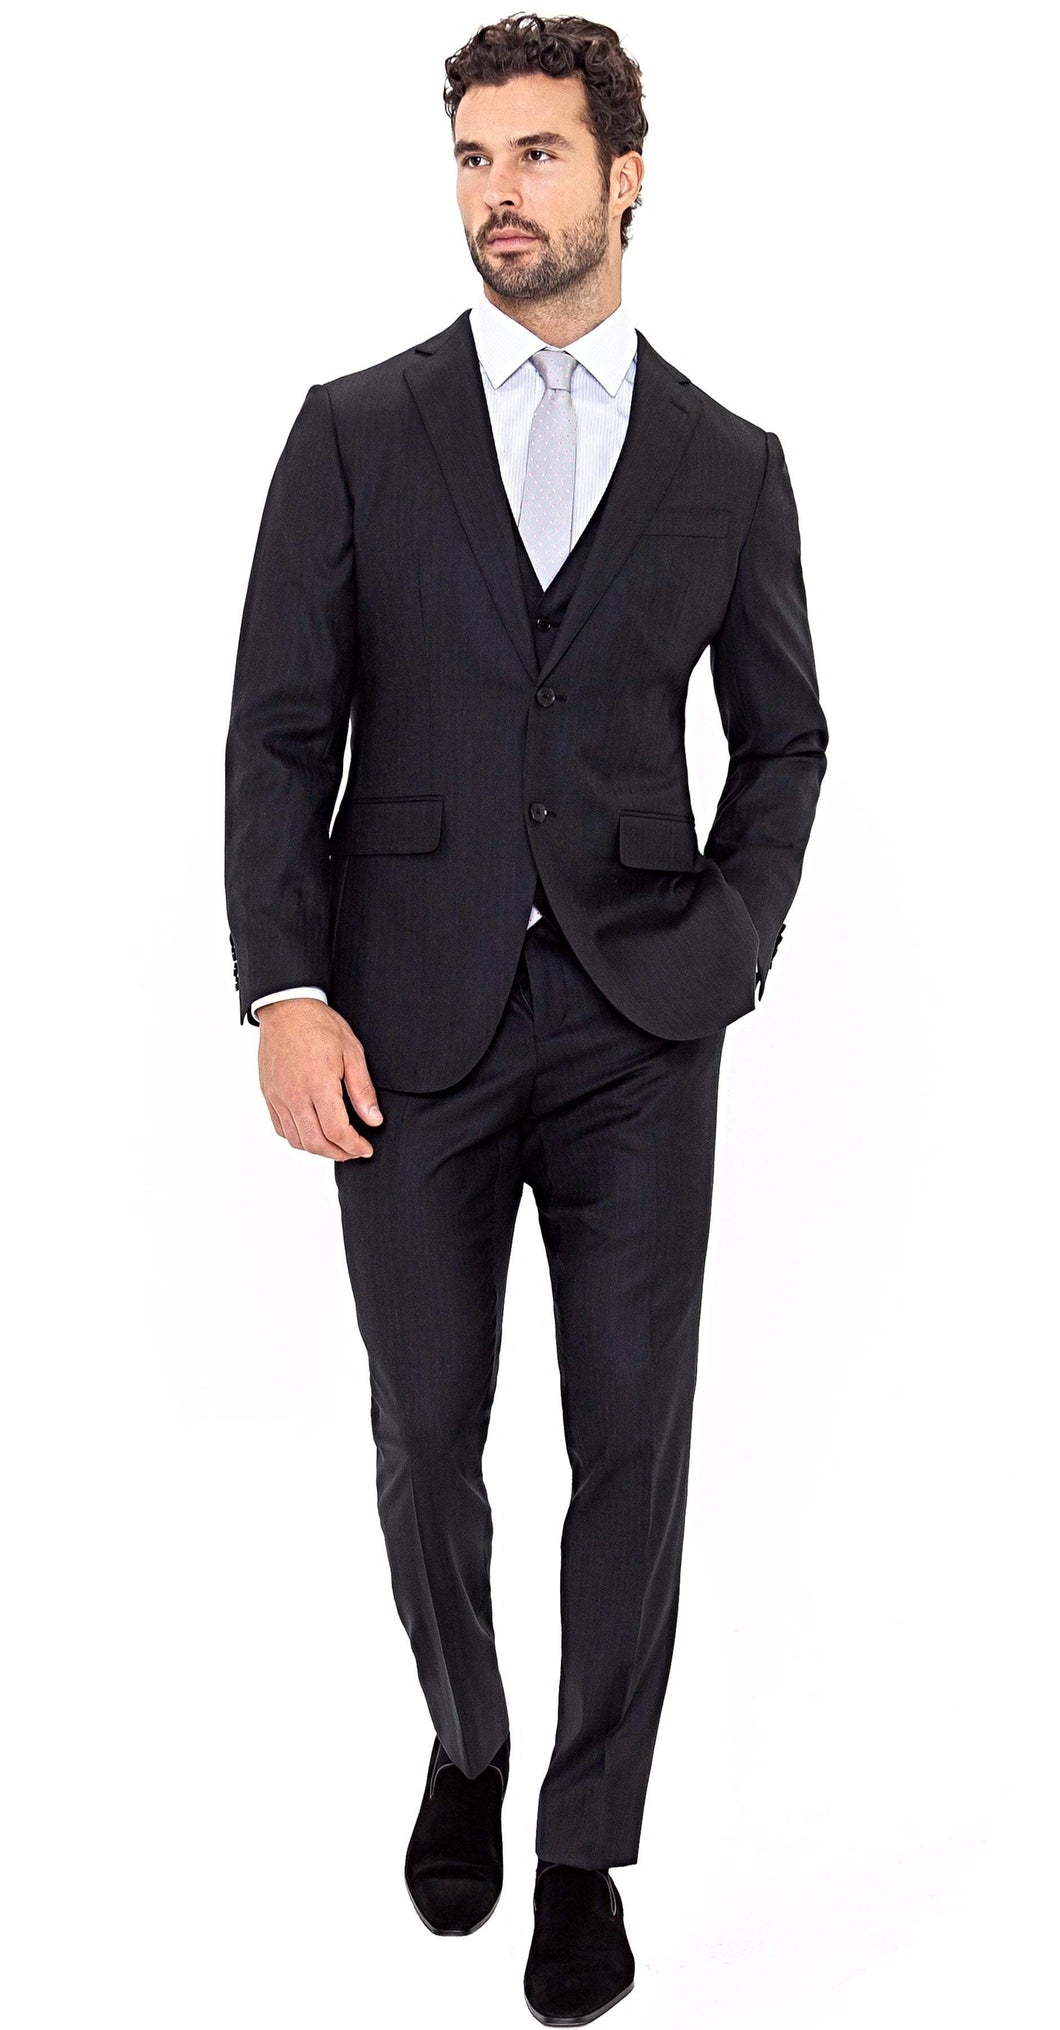 Super 150s 3-Piece Charcoal Herringbone Suit - Enzo Custom